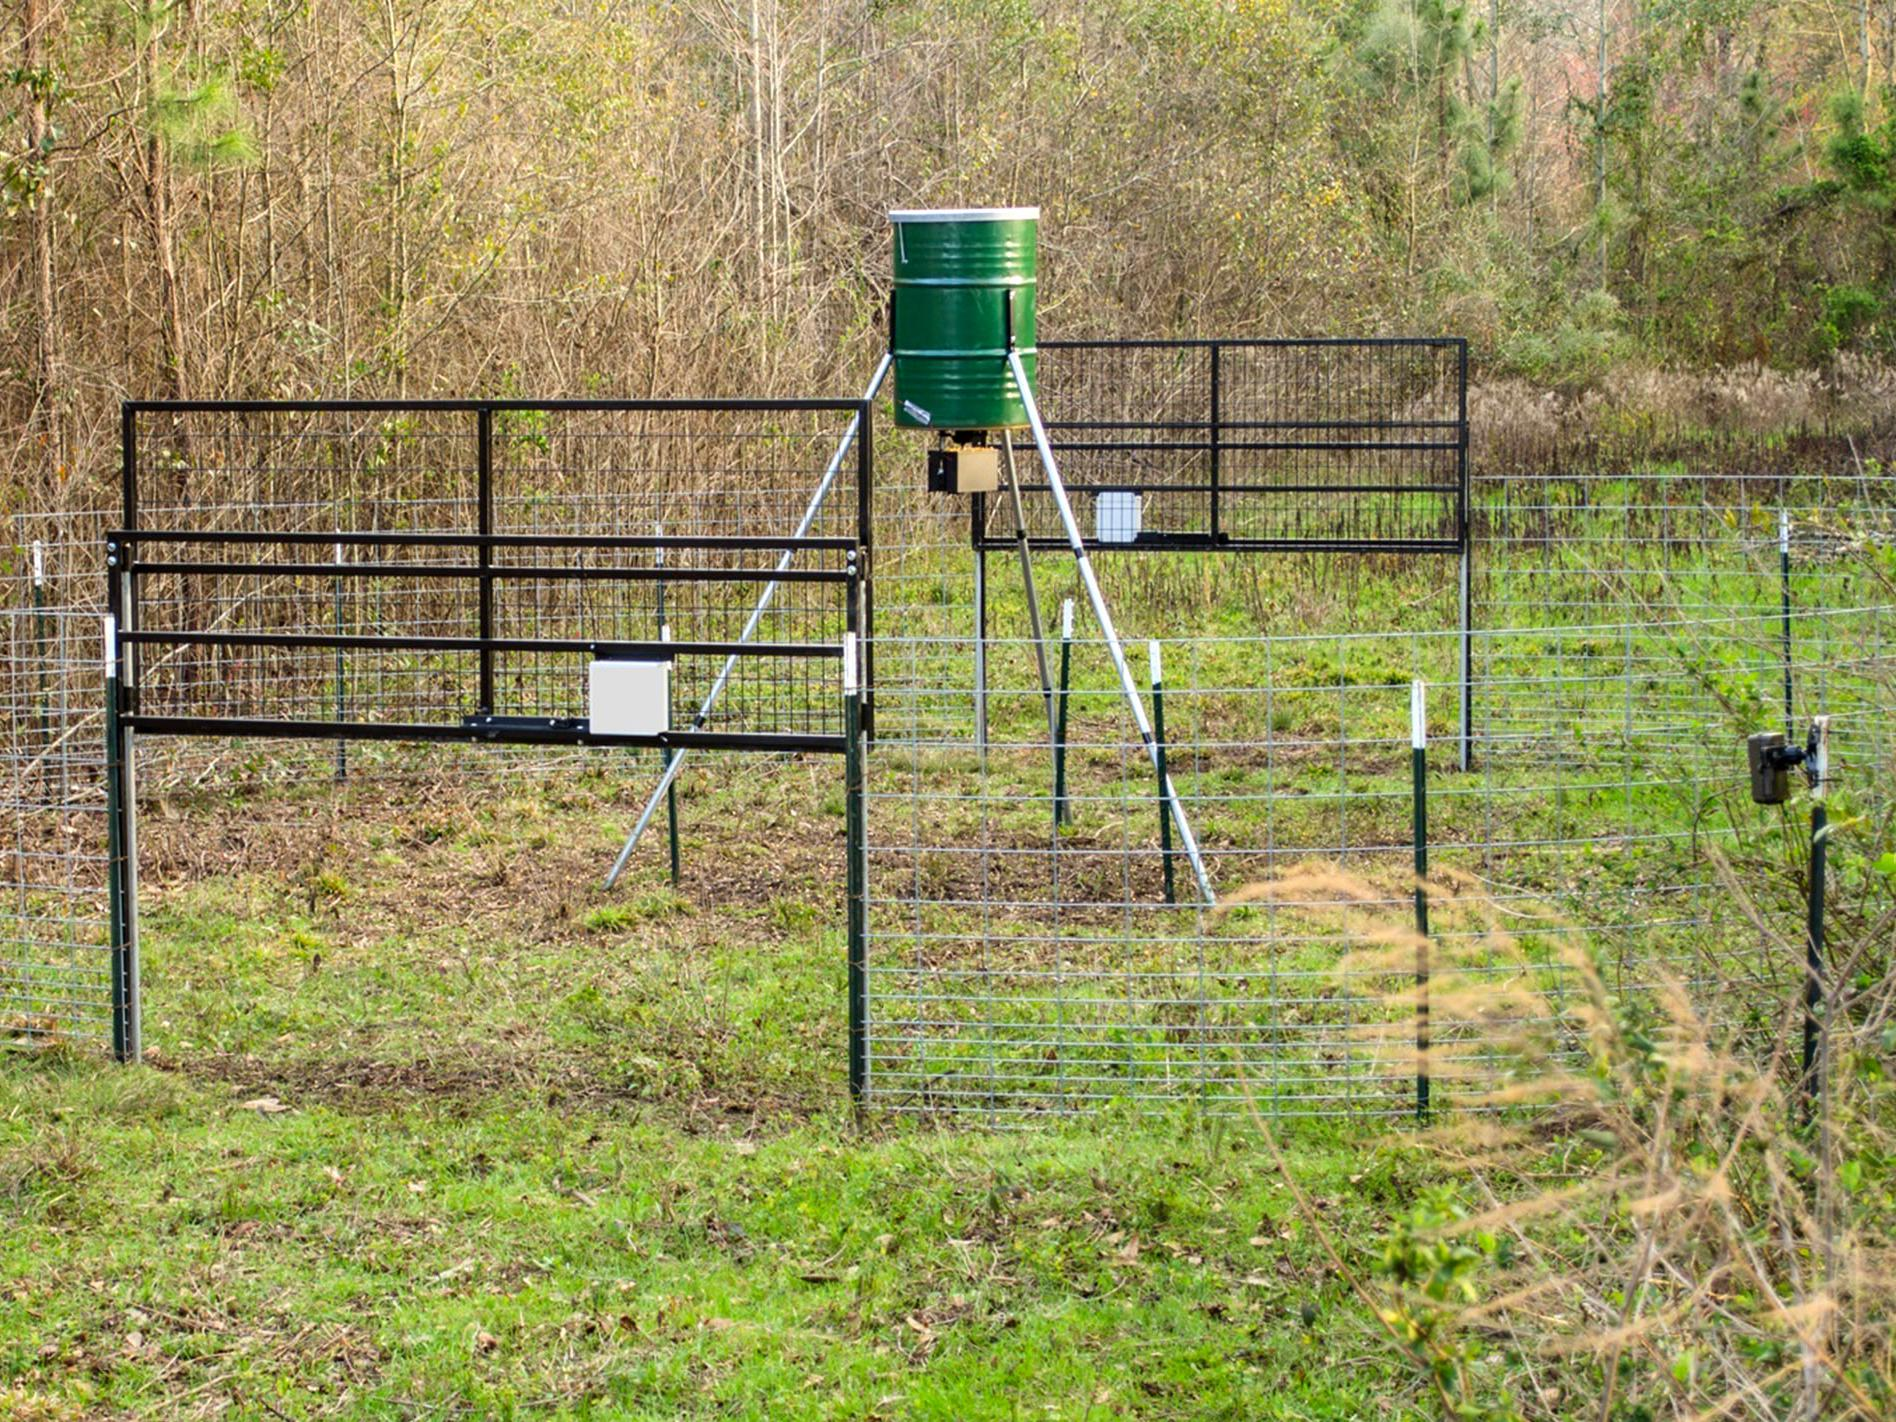 Two sturdy wire gates are raised in the large round corral trap. An automatic feeder on a tall tripod is inside the pen.